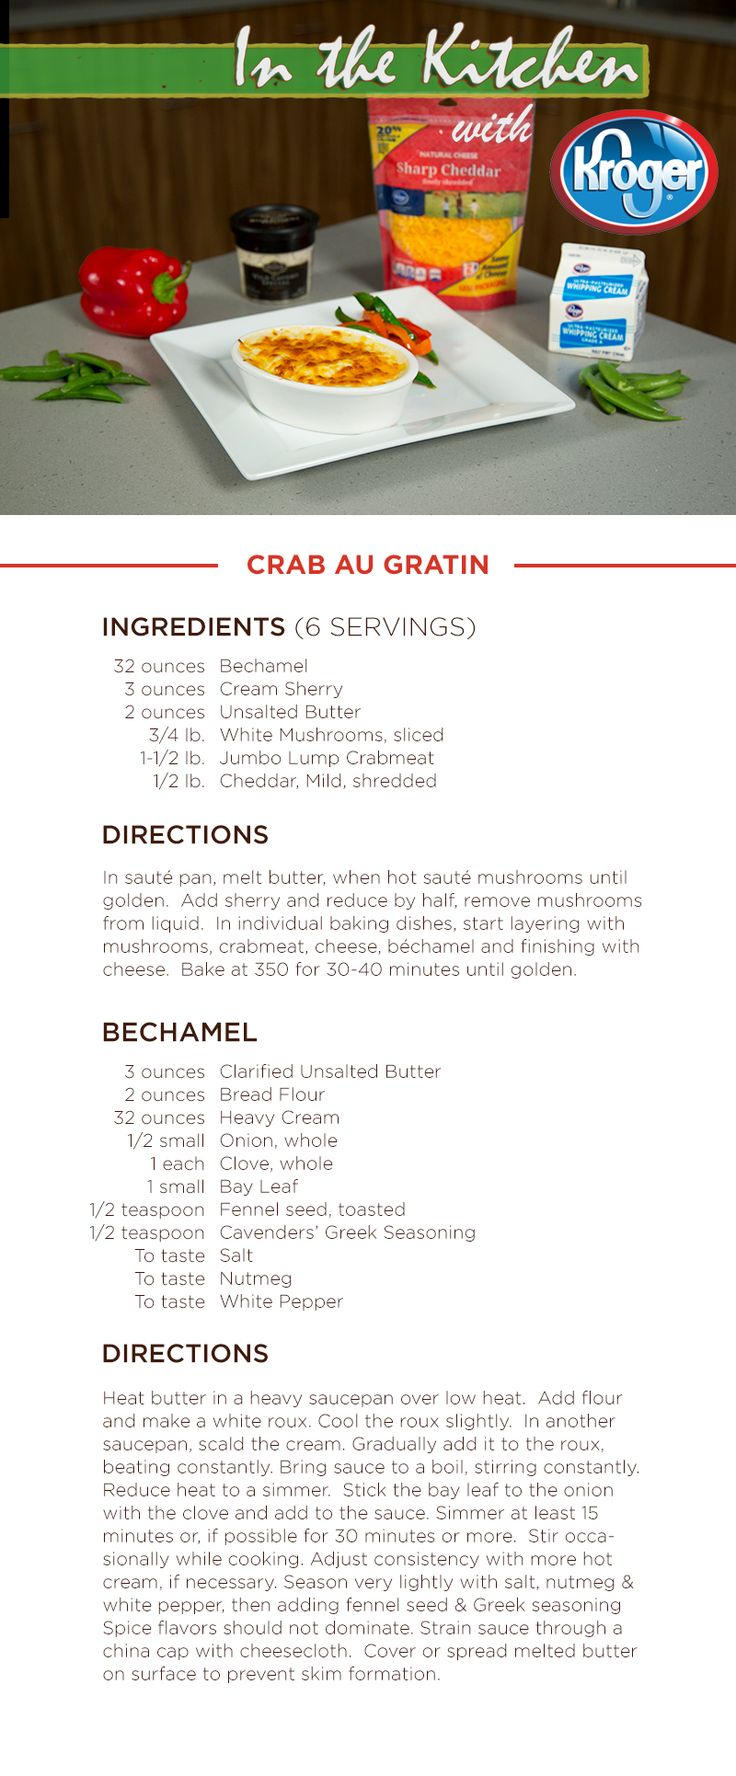 34 best in the kitchen with kroger images on pinterest cooking learn how to make crab au gratin on this weeks in the kitchen with kroger aquawatchcareerveggie recipeswebsitegratincooking forumfinder Choice Image